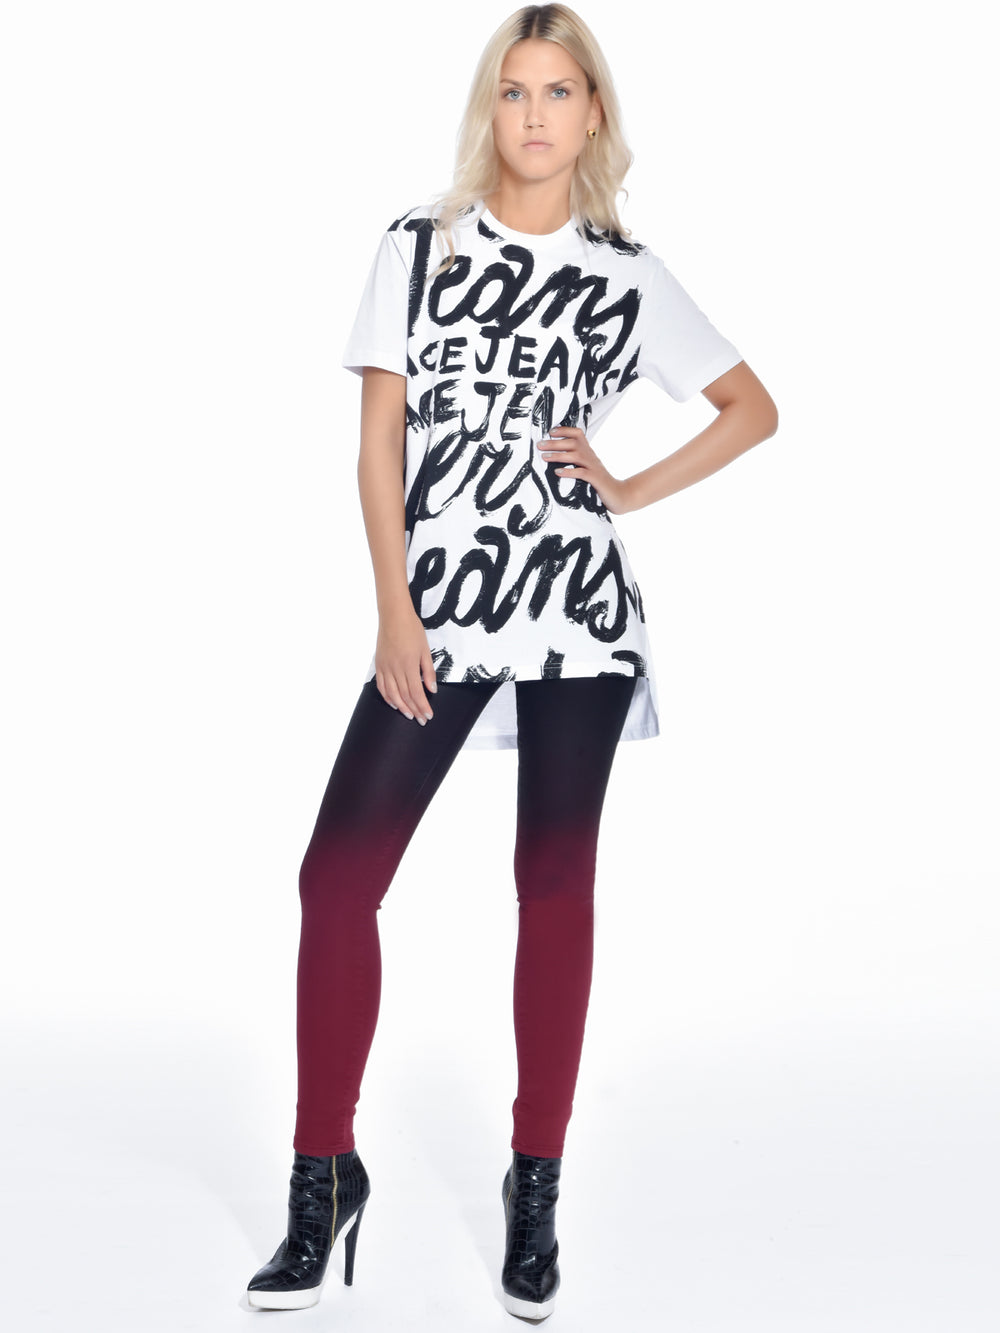 White Graphic Print T-Shirt, VERSACE JEANS - elilhaam.com